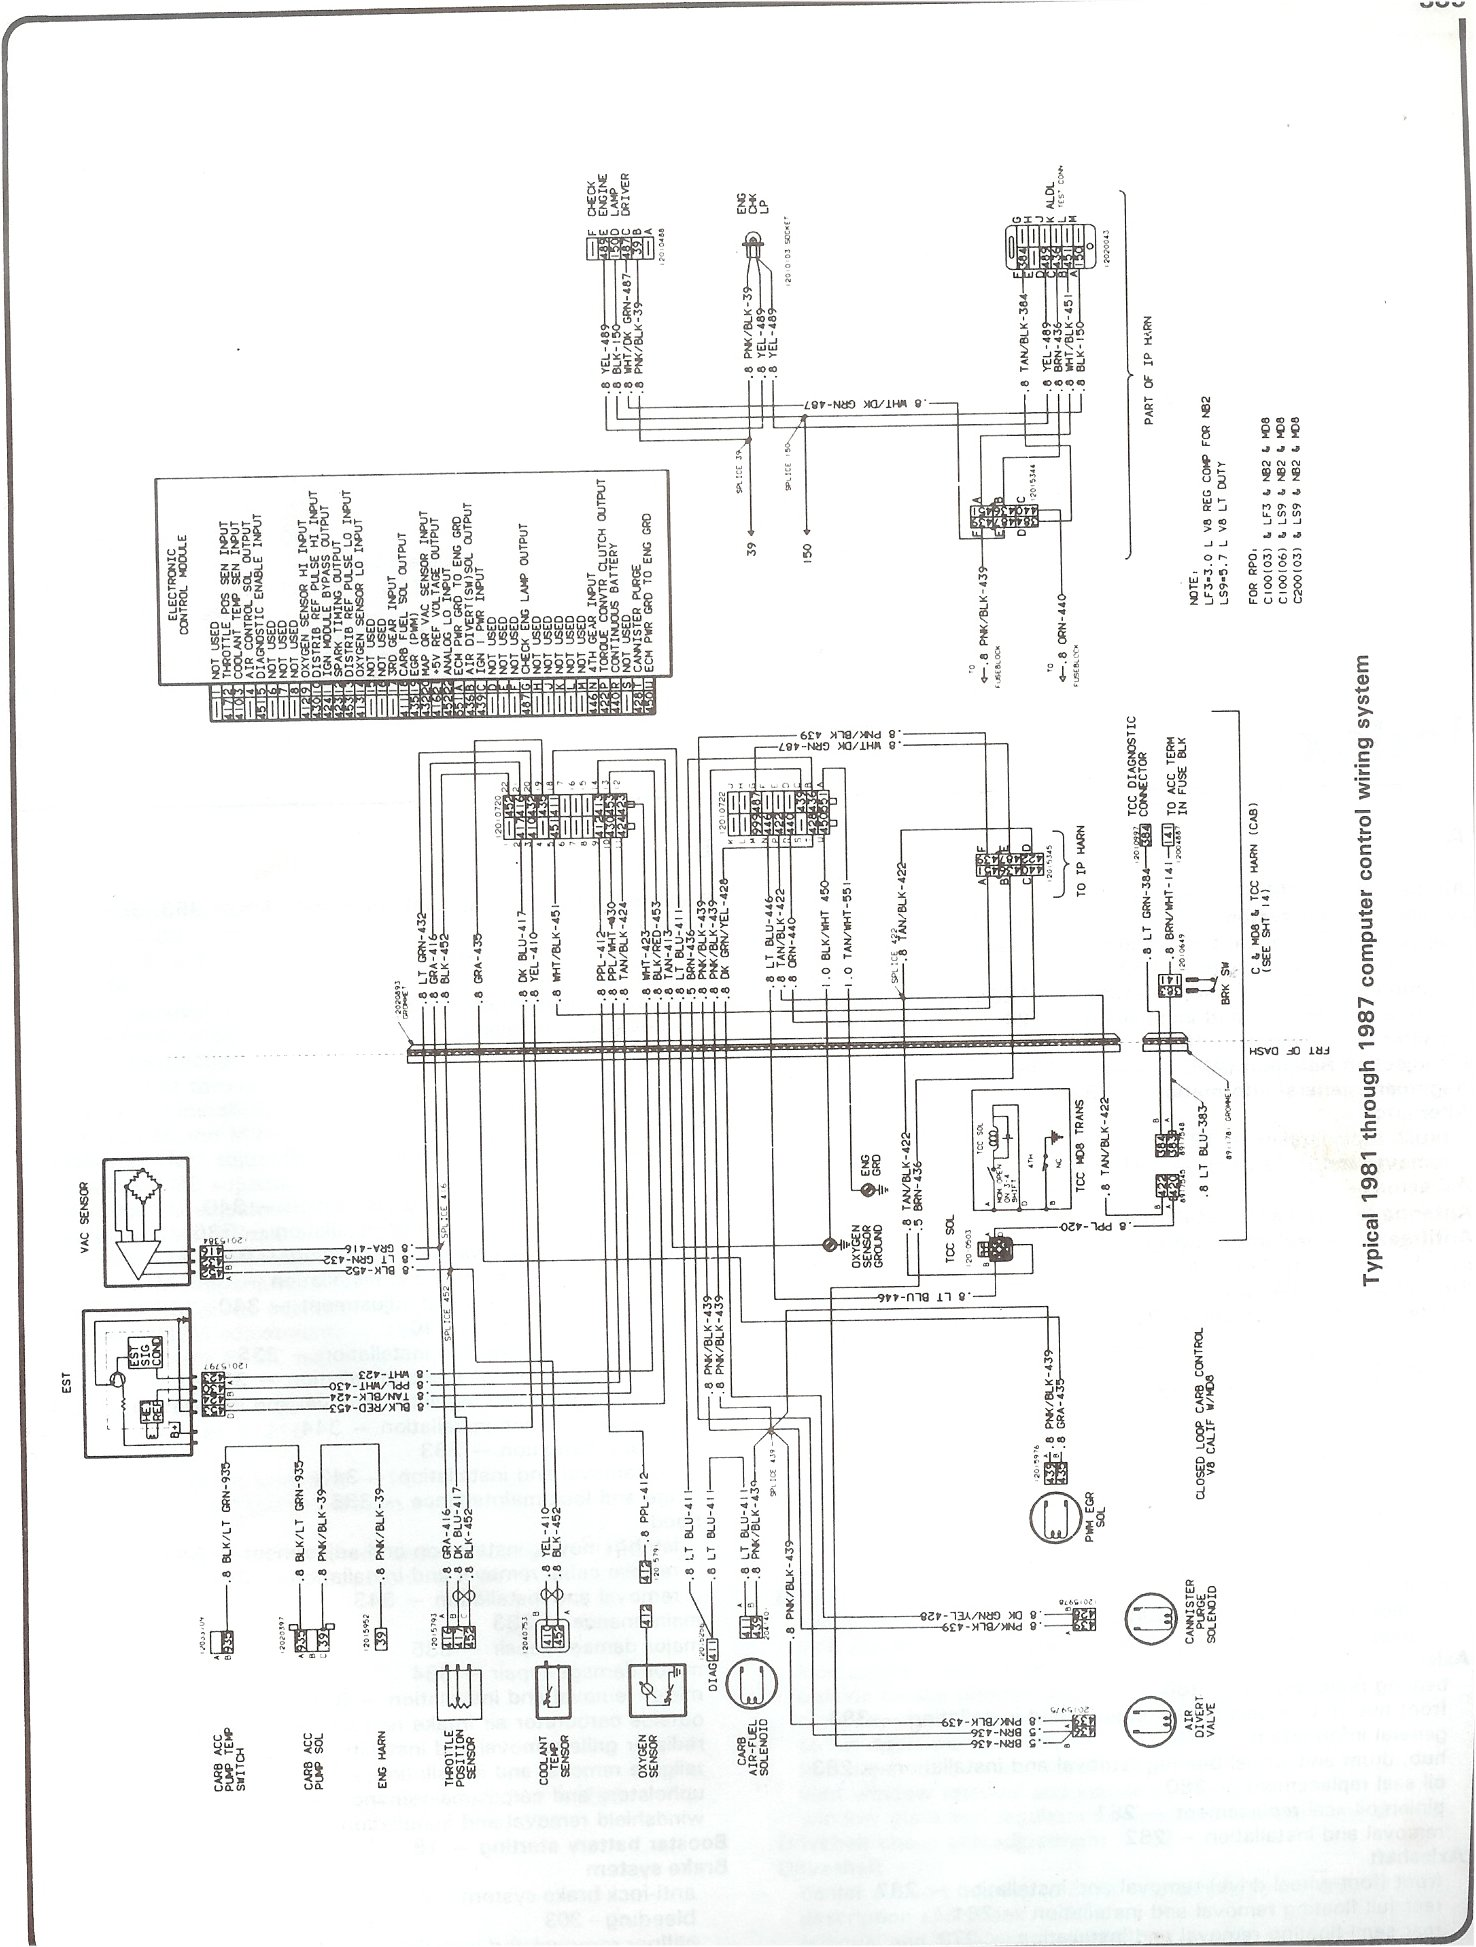 complete 73 87 wiring diagrams rh forum 73 87chevytrucks com 1986 chevy c10 radio wiring diagram 86 chevy truck radio wiring diagram